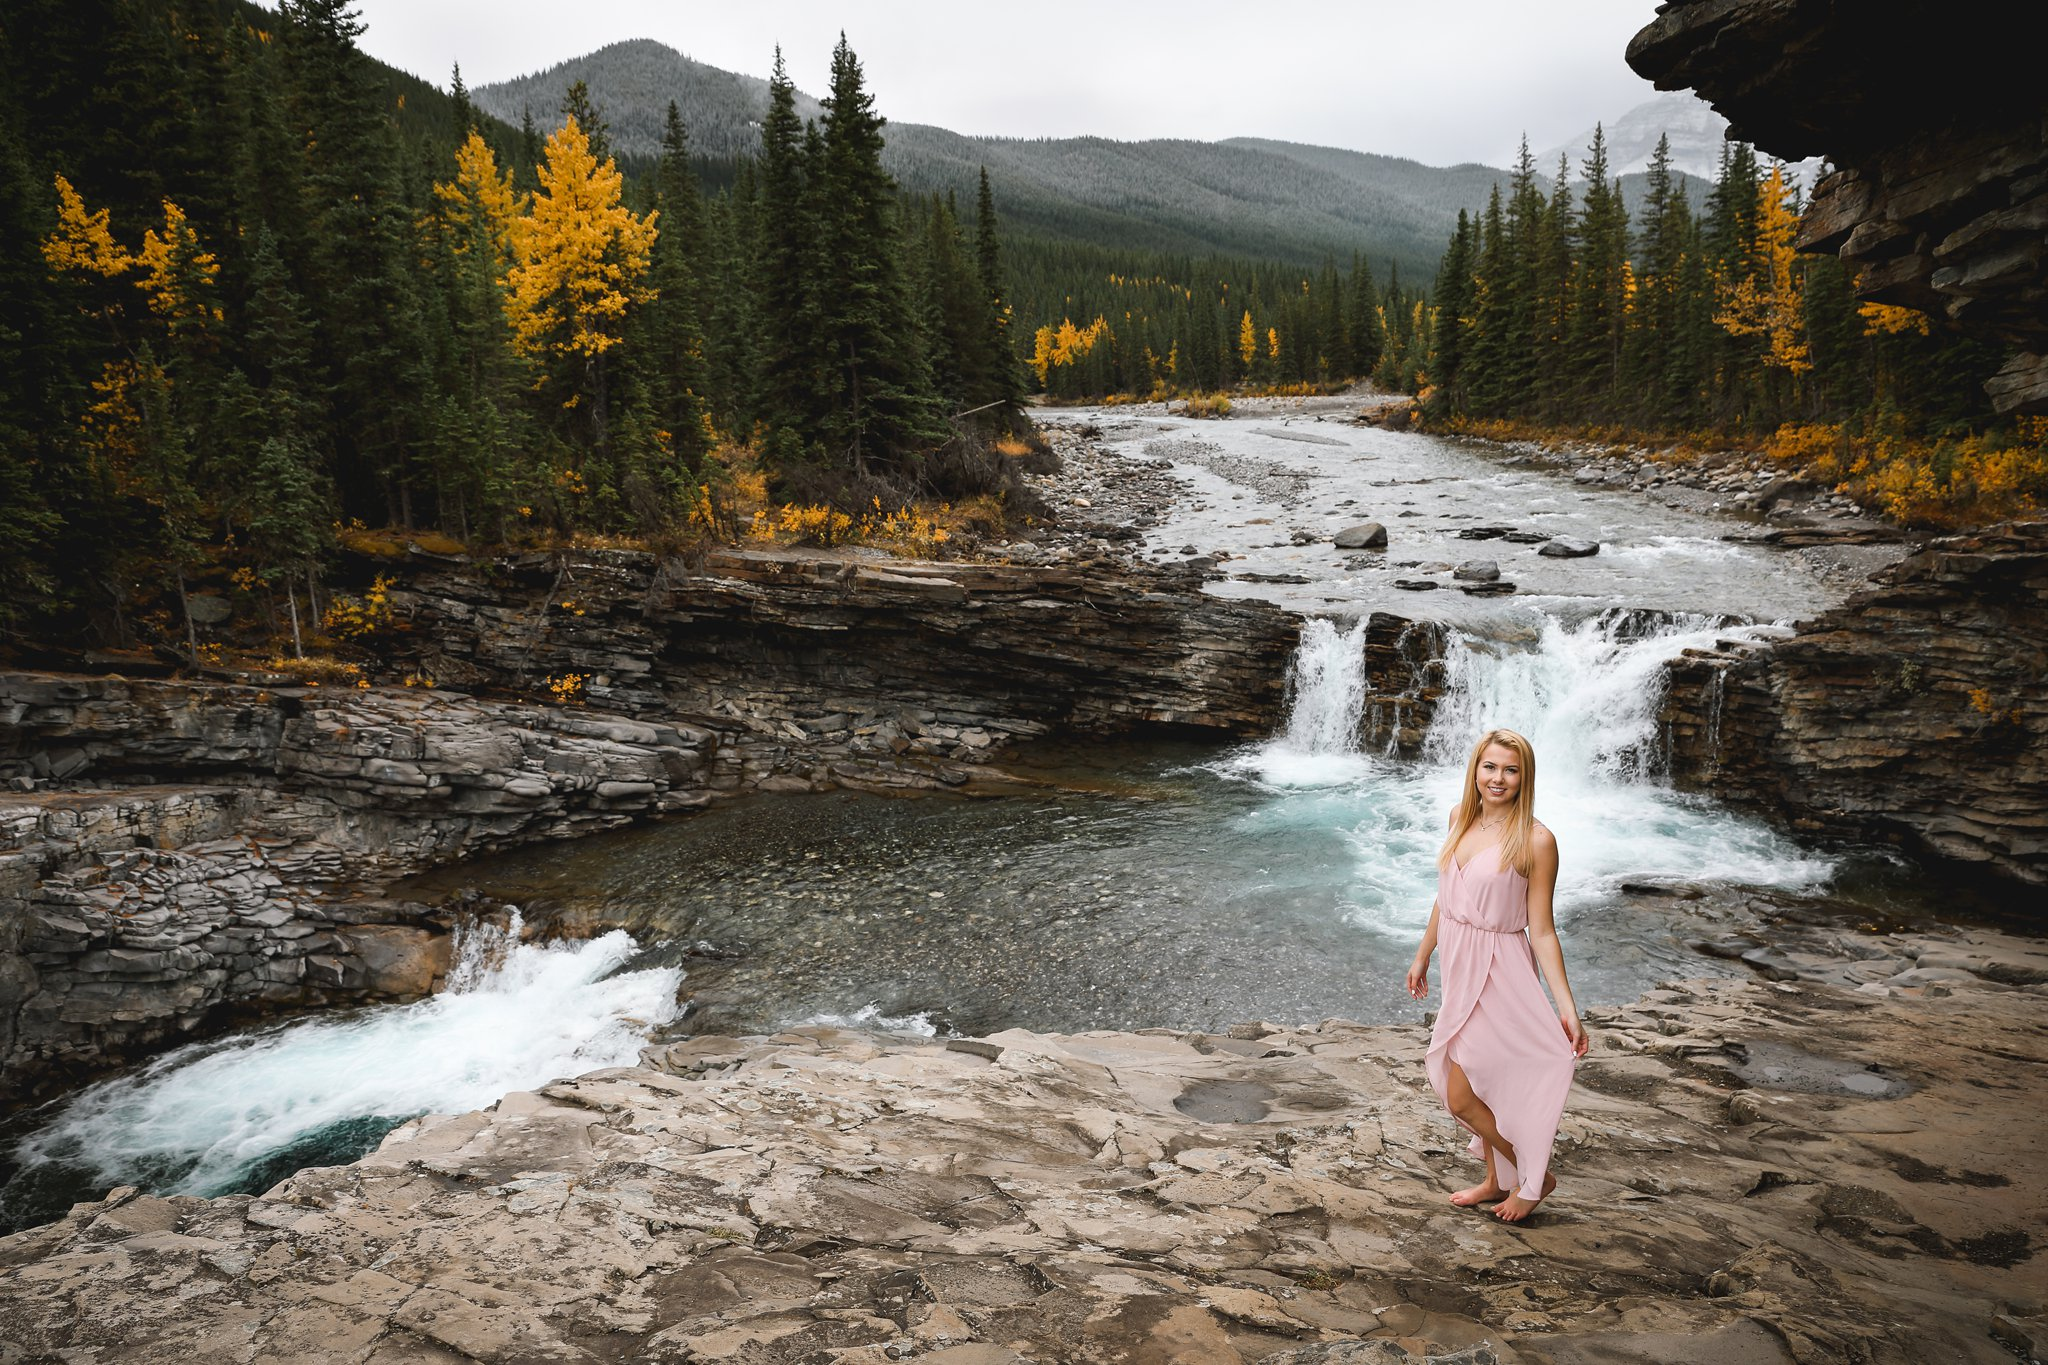 AshleyDaphnePhotography Calgary Photographer Wedding Family Senior Portraits Rocky Mountains Sheep River Falls Autumn Fall_0032.jpg